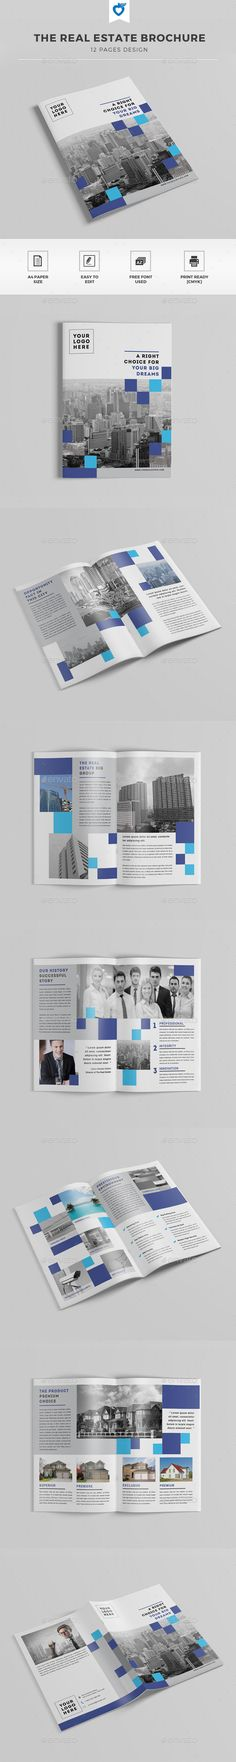 The Real Estate Brochure — InDesign INDD #catalogue #architecture • Available here → https://graphicriver.net/item/the-real-estate-brochure/11493992?ref=pxcr